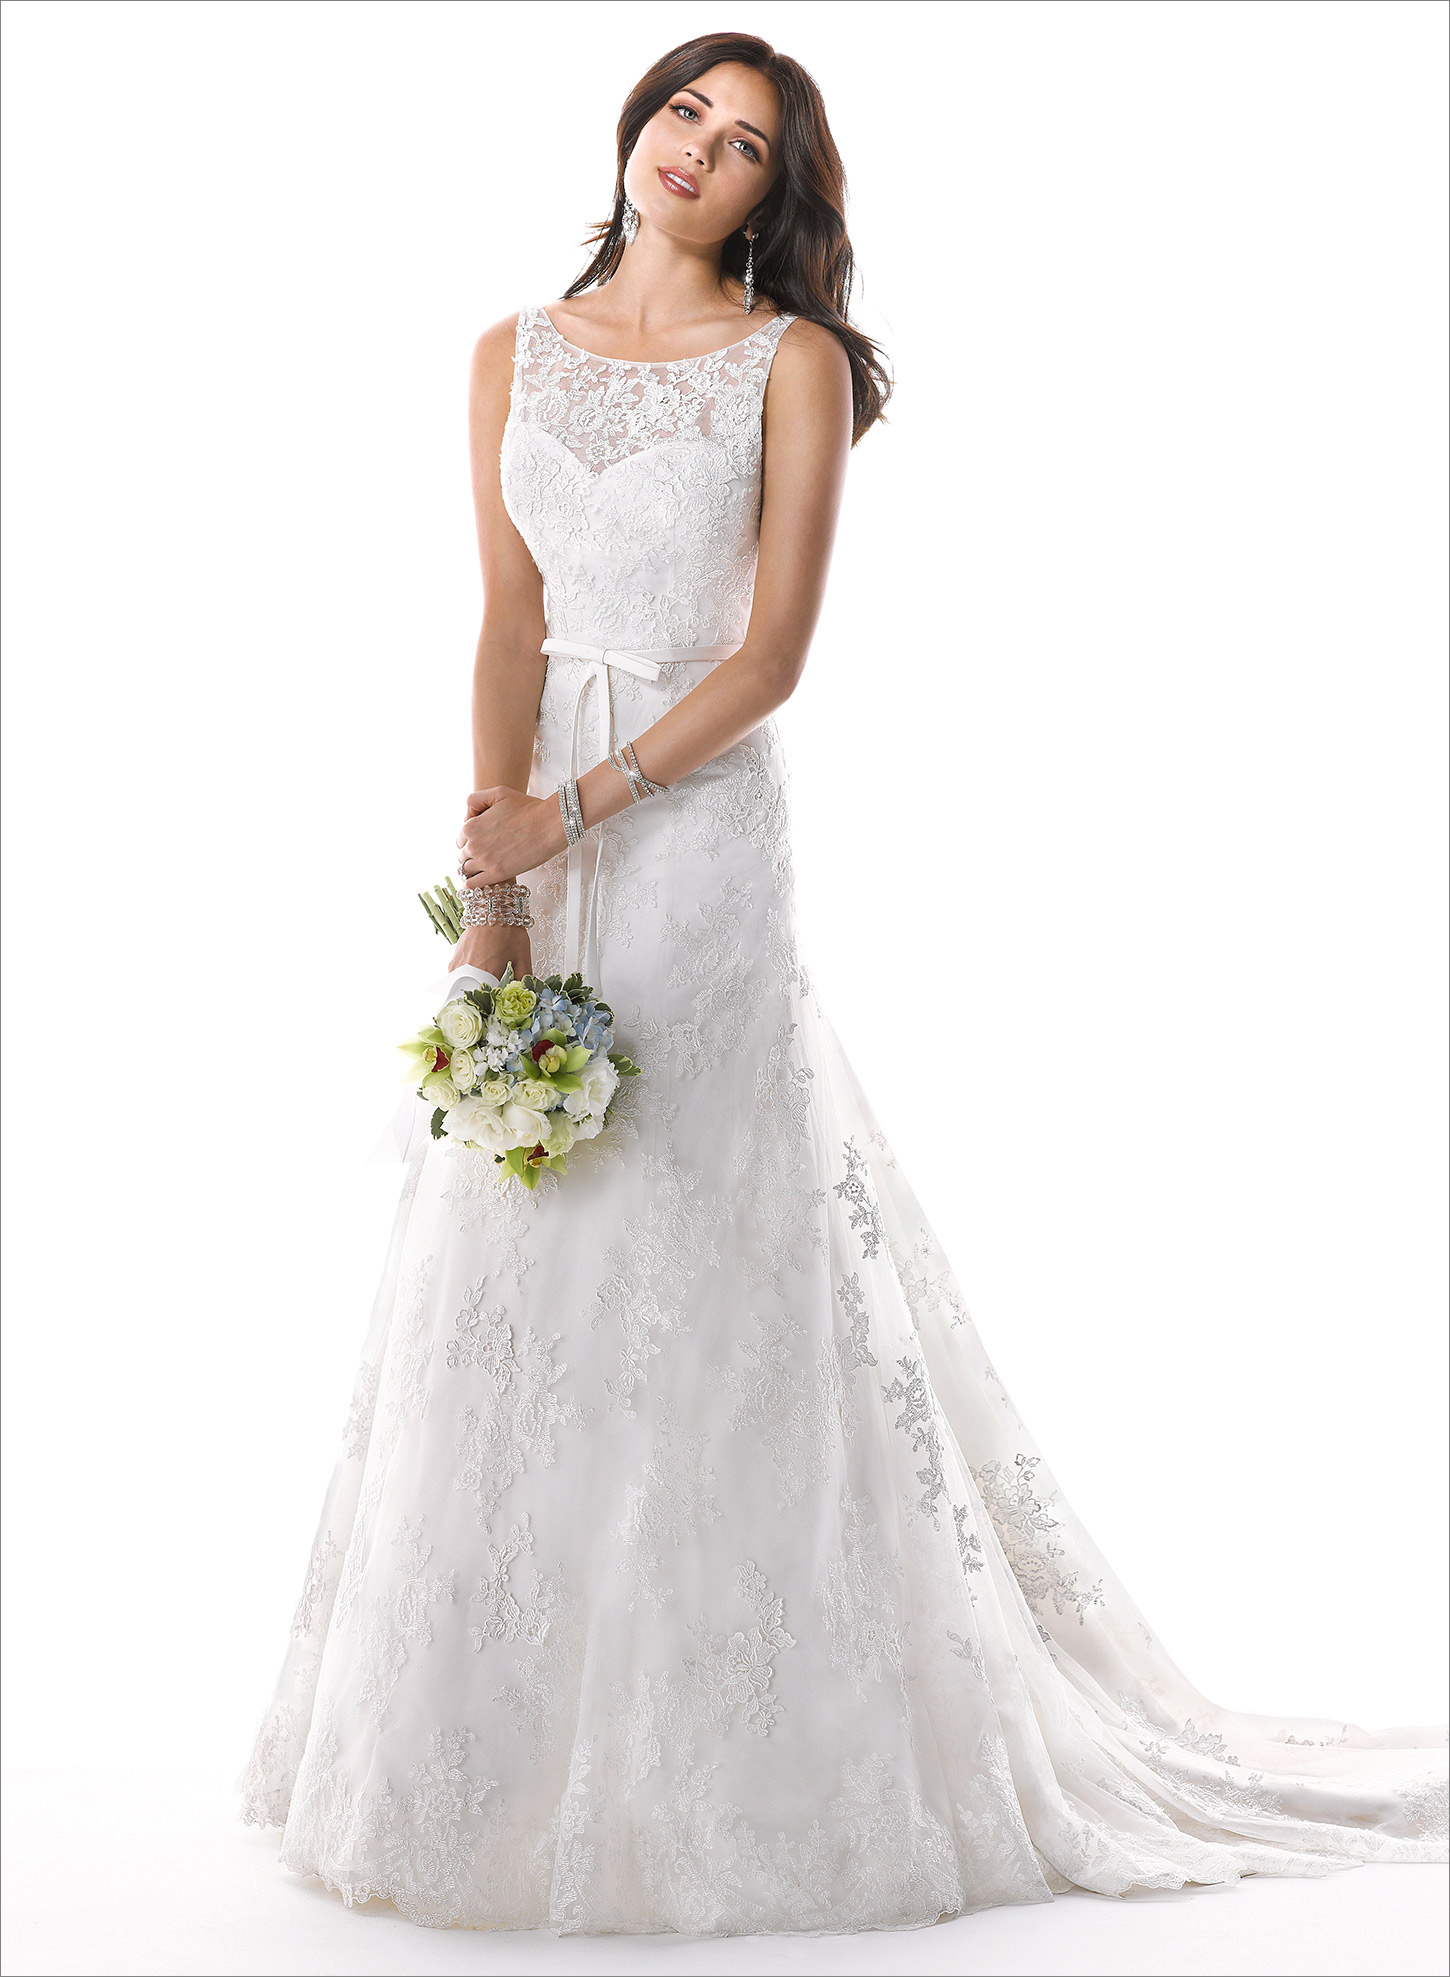 Casual Wedding Dresses Dallas : Maggie sottero wedding dresses bridal gowns mother of